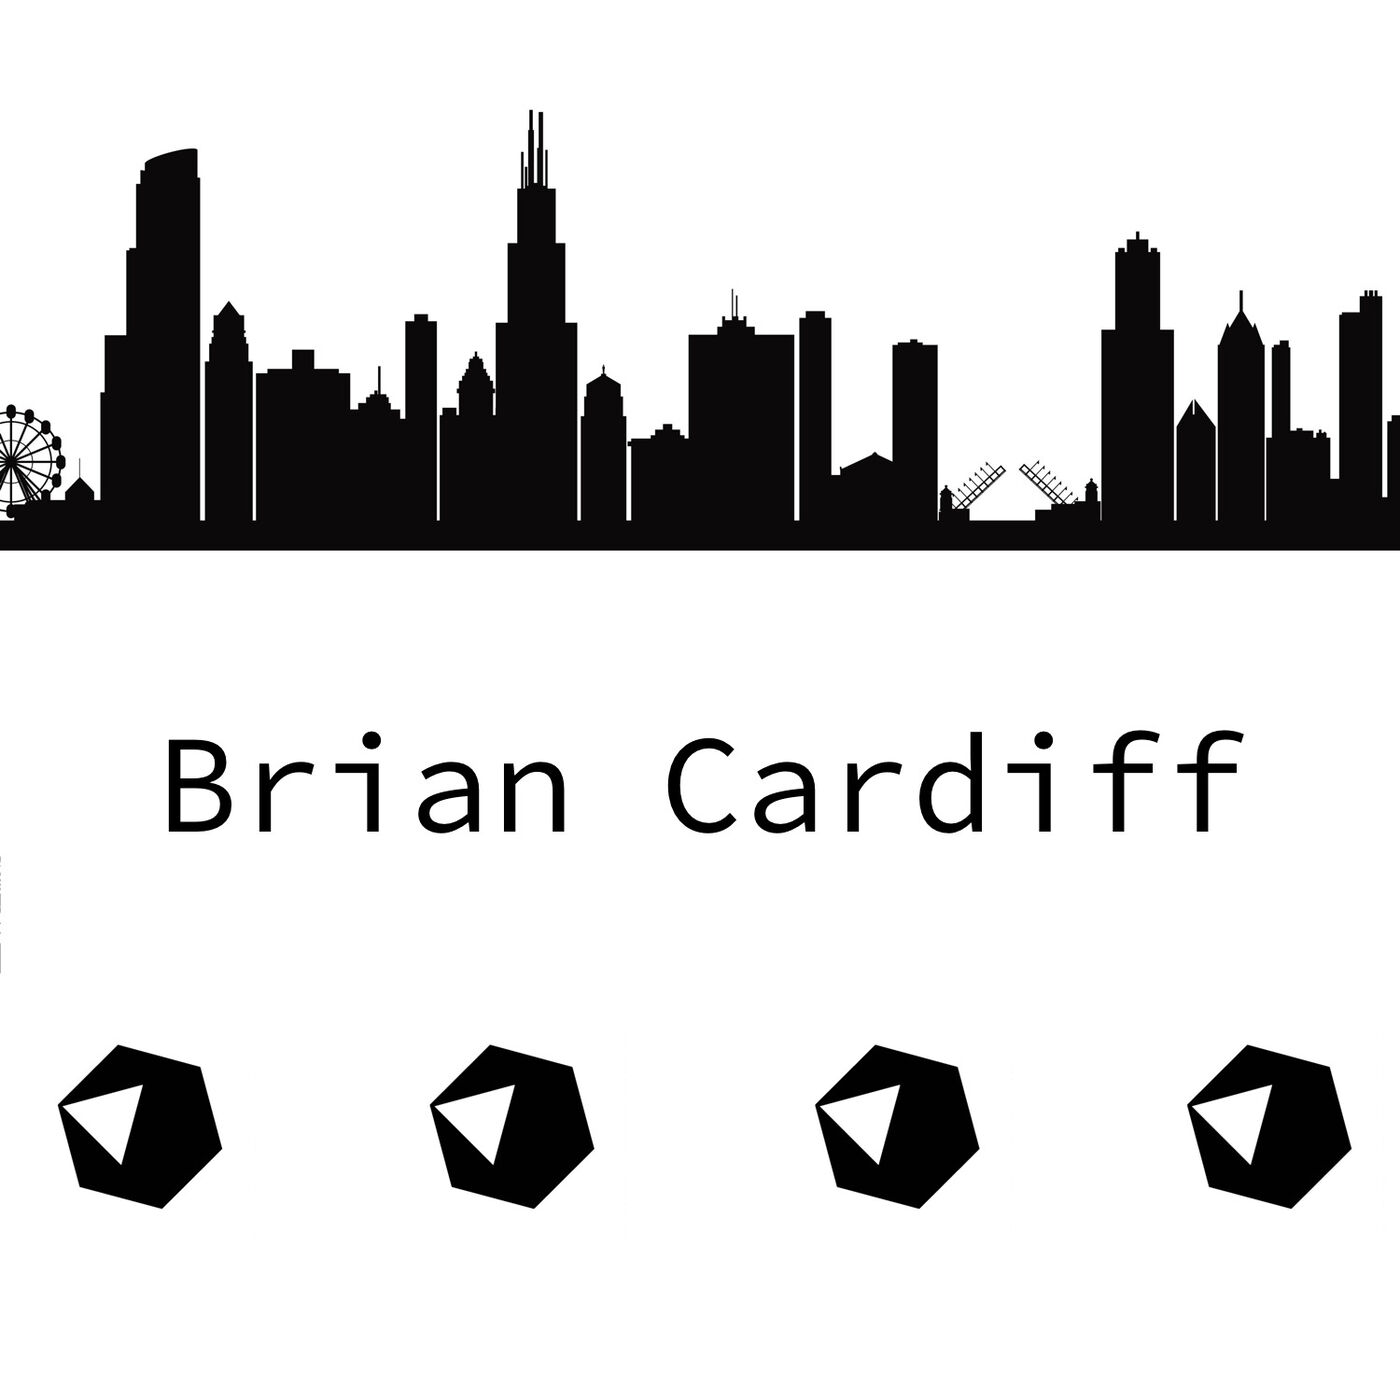 Brian Cardiff: The Cores of Crystal